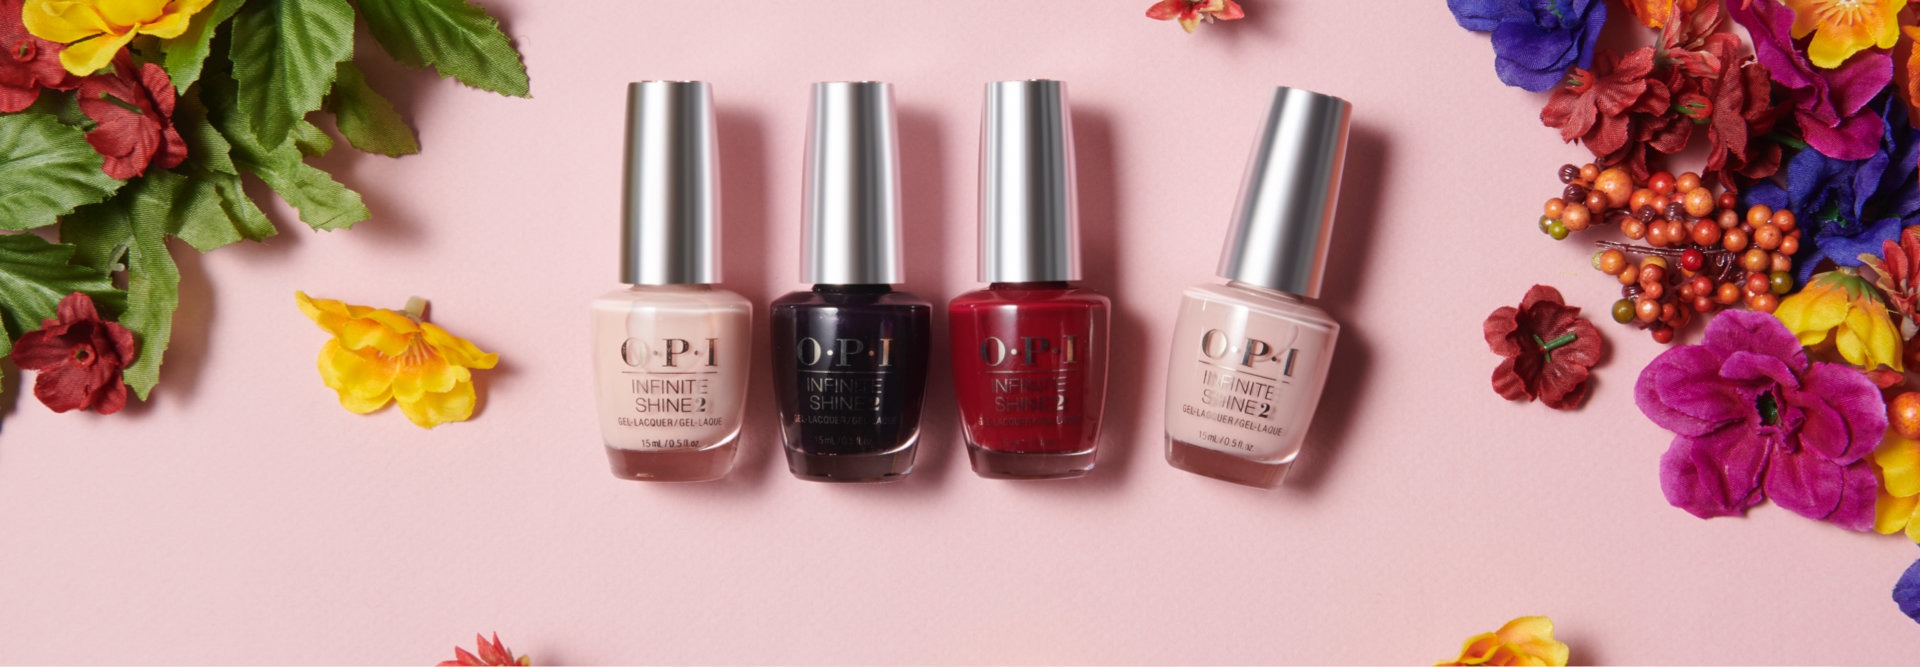 Shop Products OPI Infinite Shine